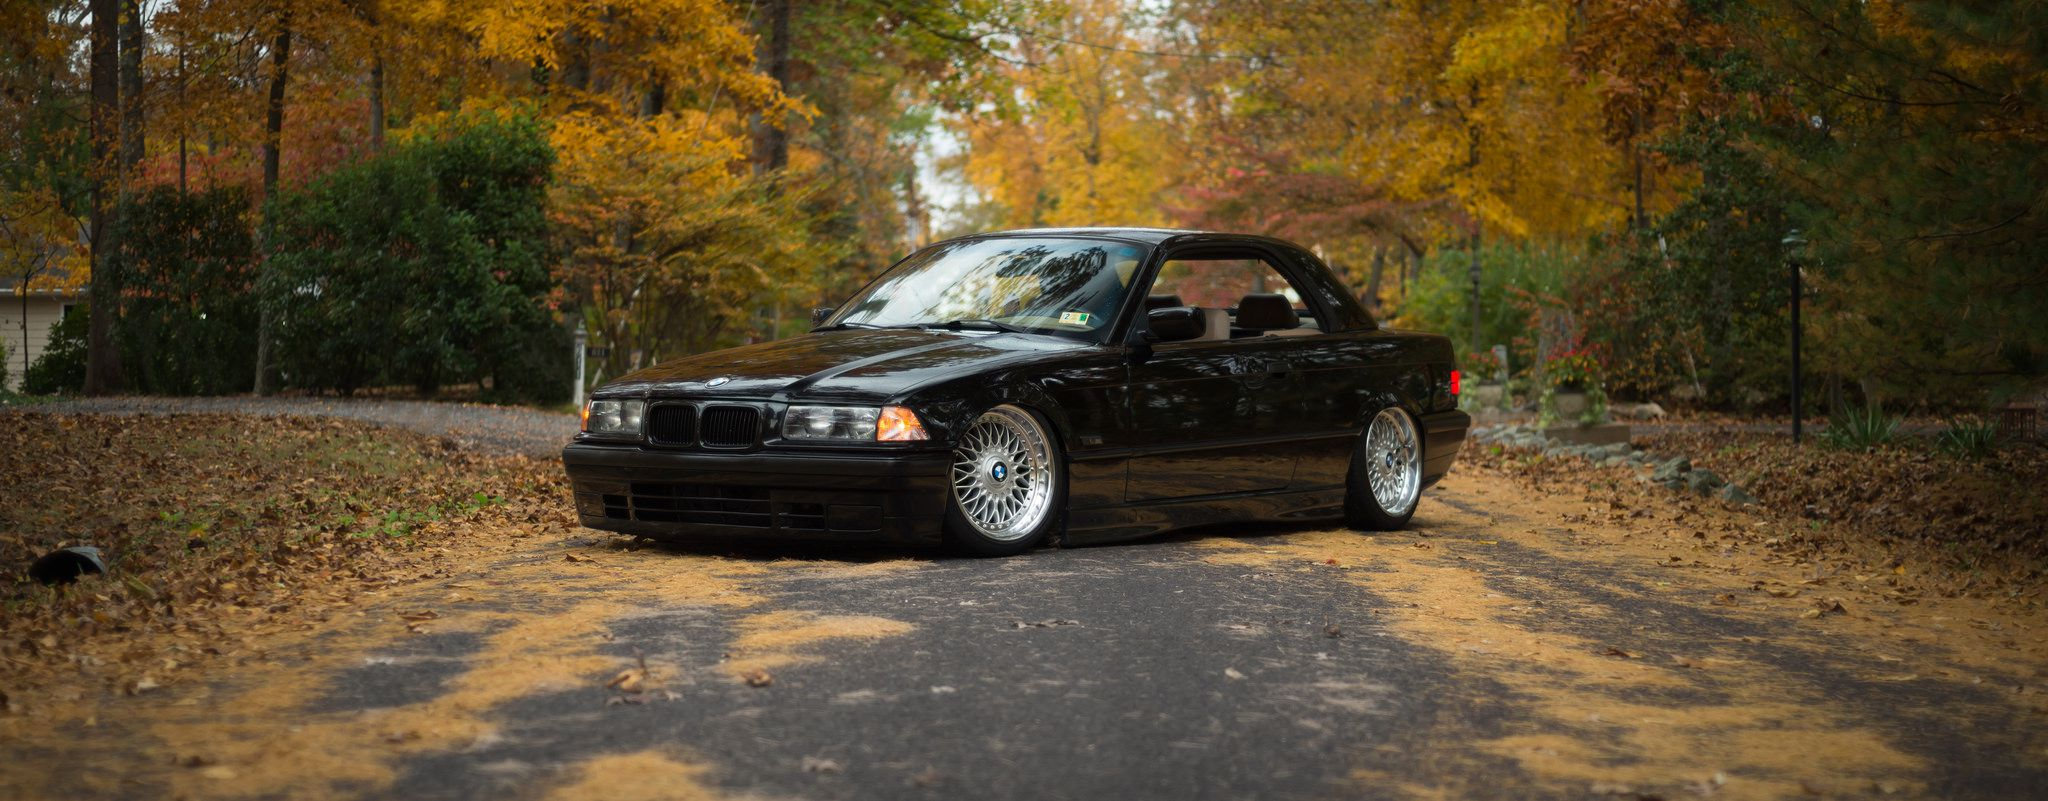 BMW E36 on silver forged wheels